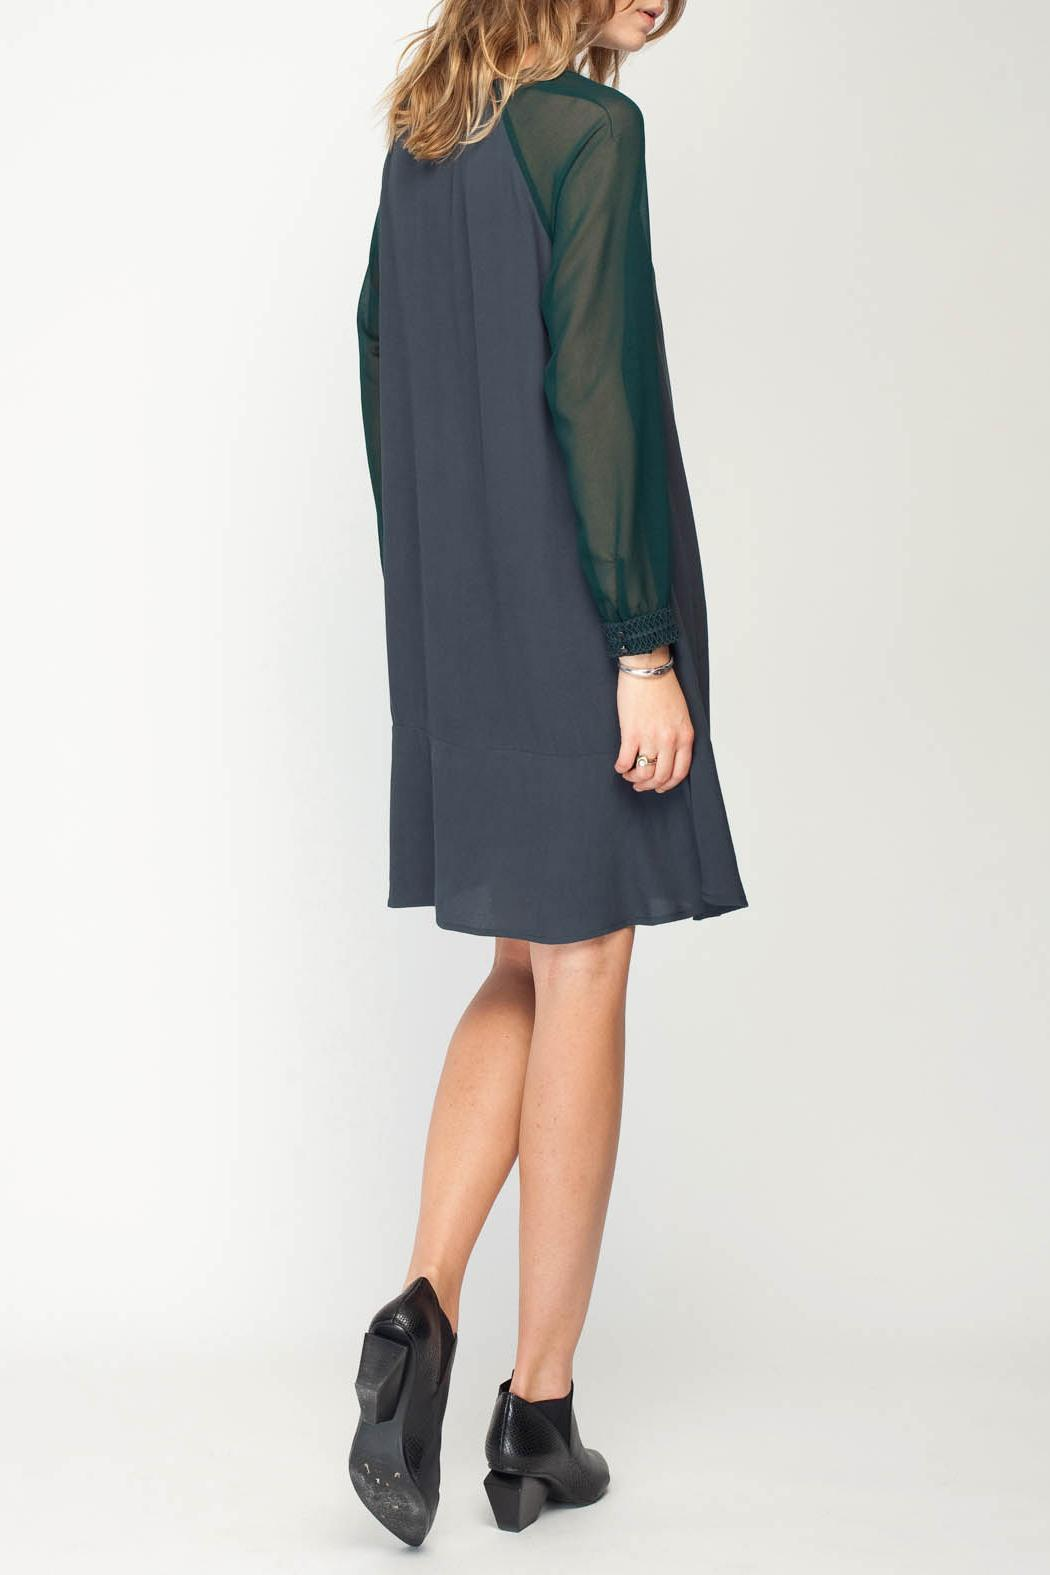 Gentle Fawn Senses Dress - Side Cropped Image